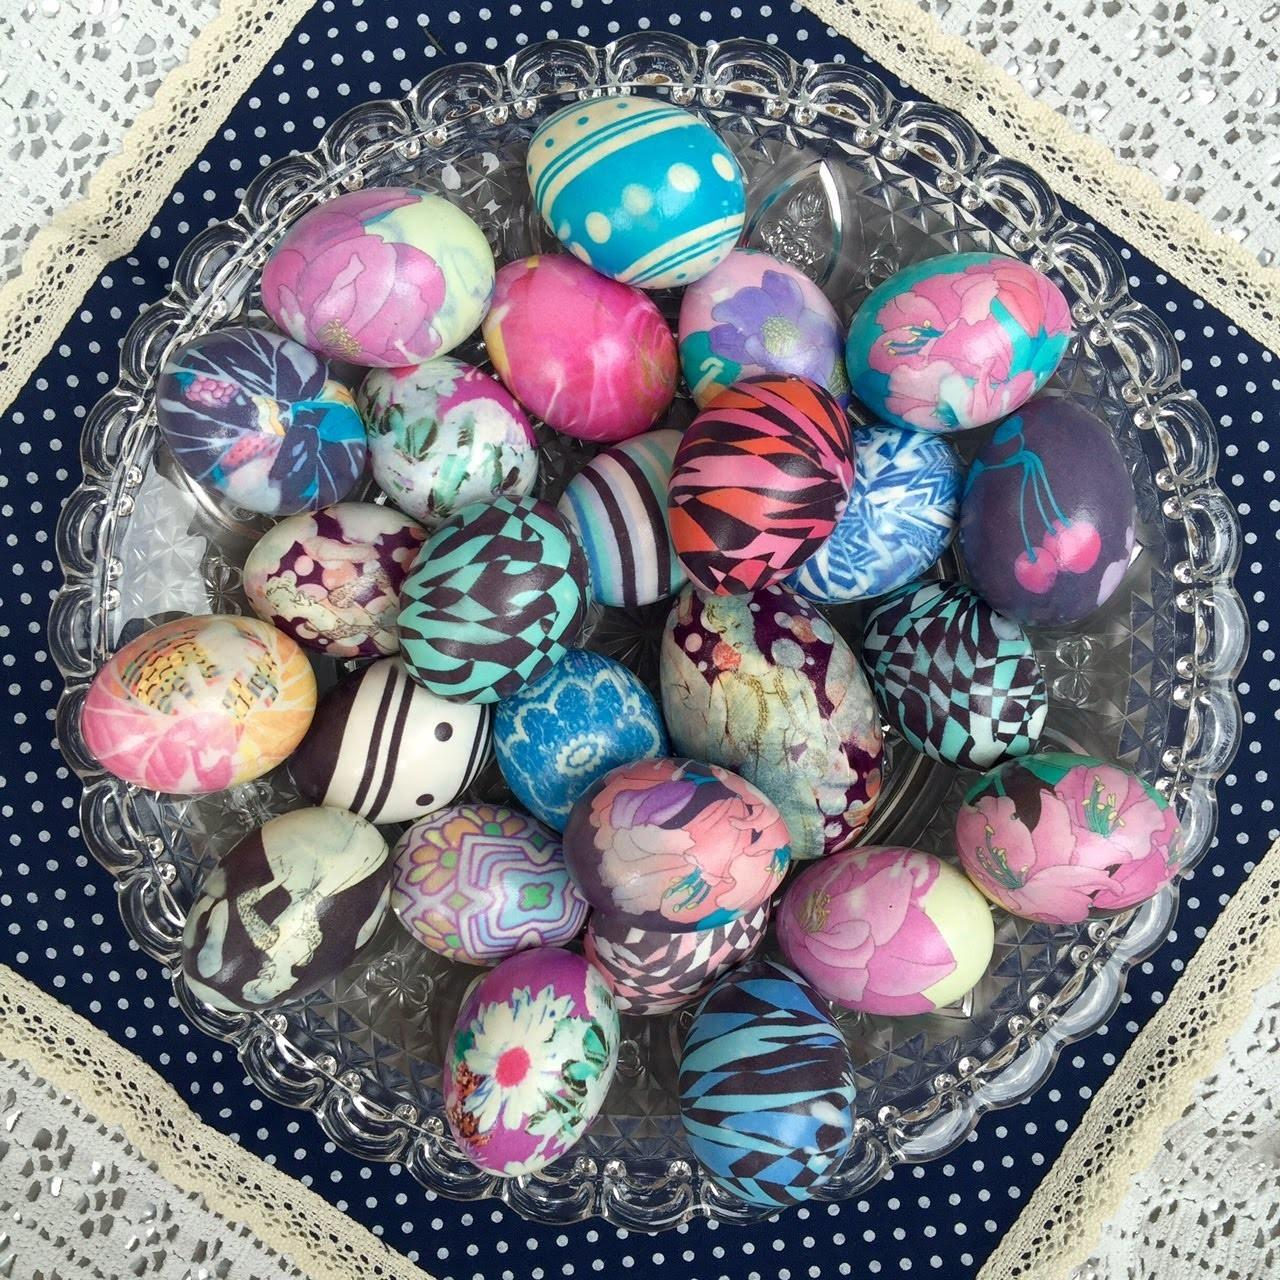 Dye Easter Eggs Silk Crafts Diy Projects